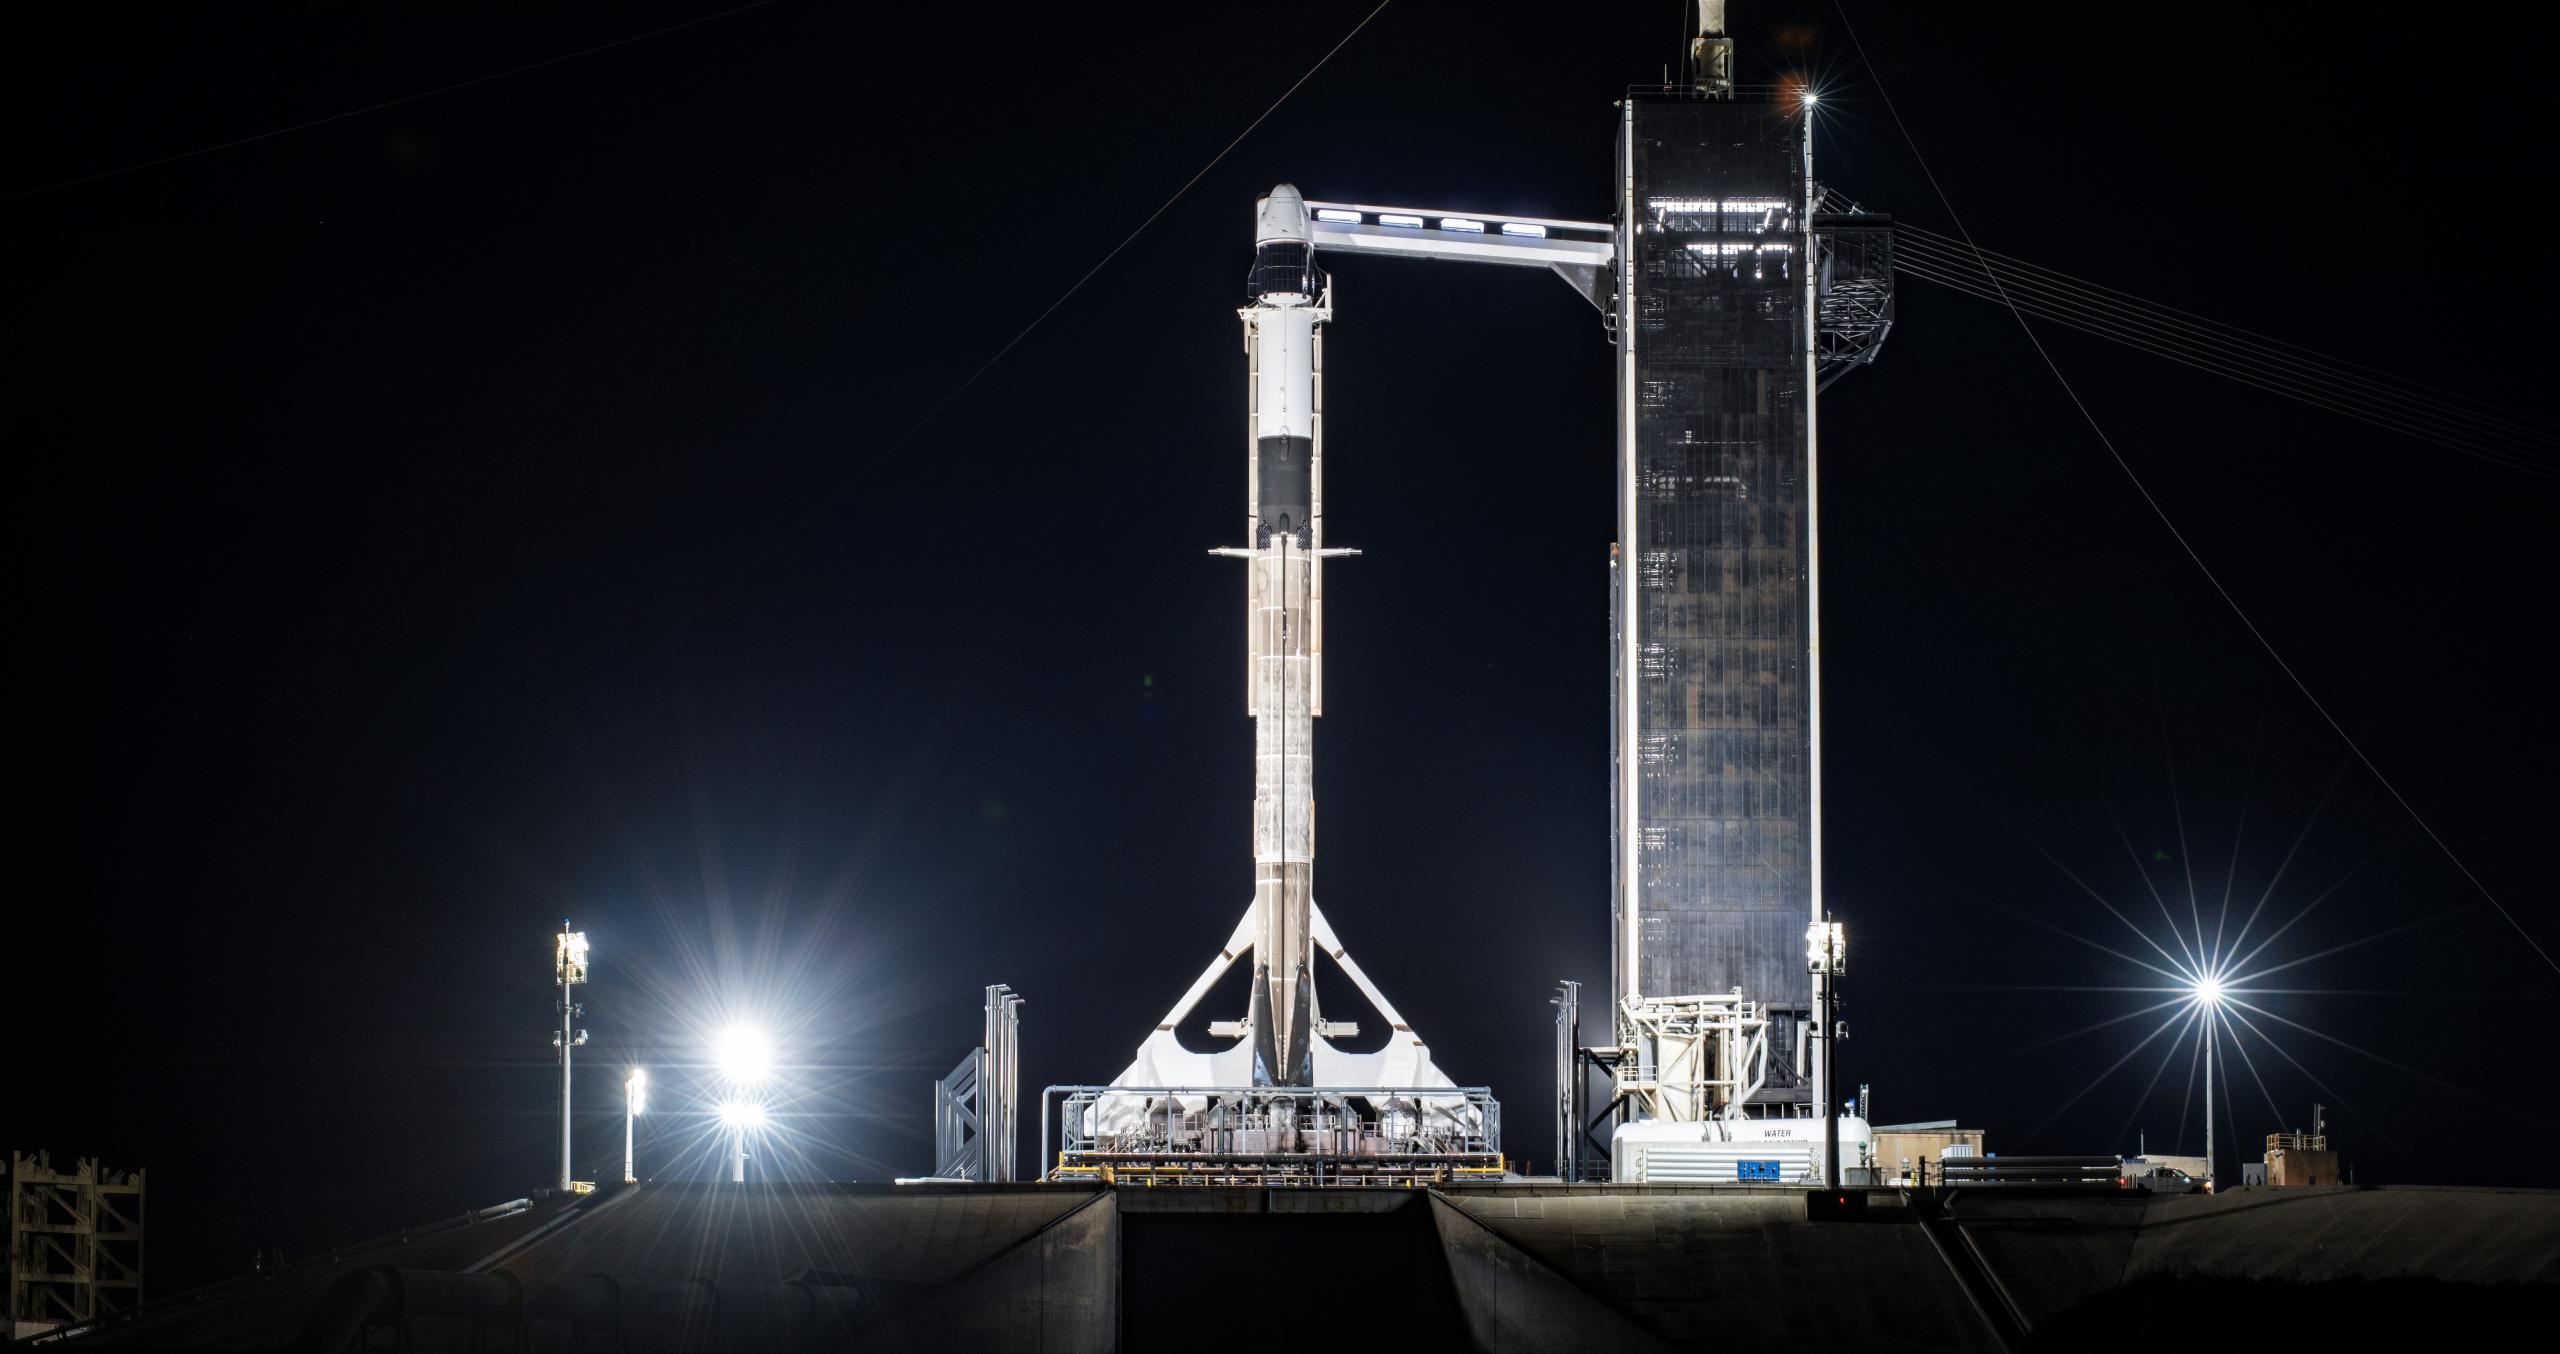 CRS-21 Cargo Dragon 2 Falcon 9 B1058 120220 (SpaceX) vertical 4 crop (c)